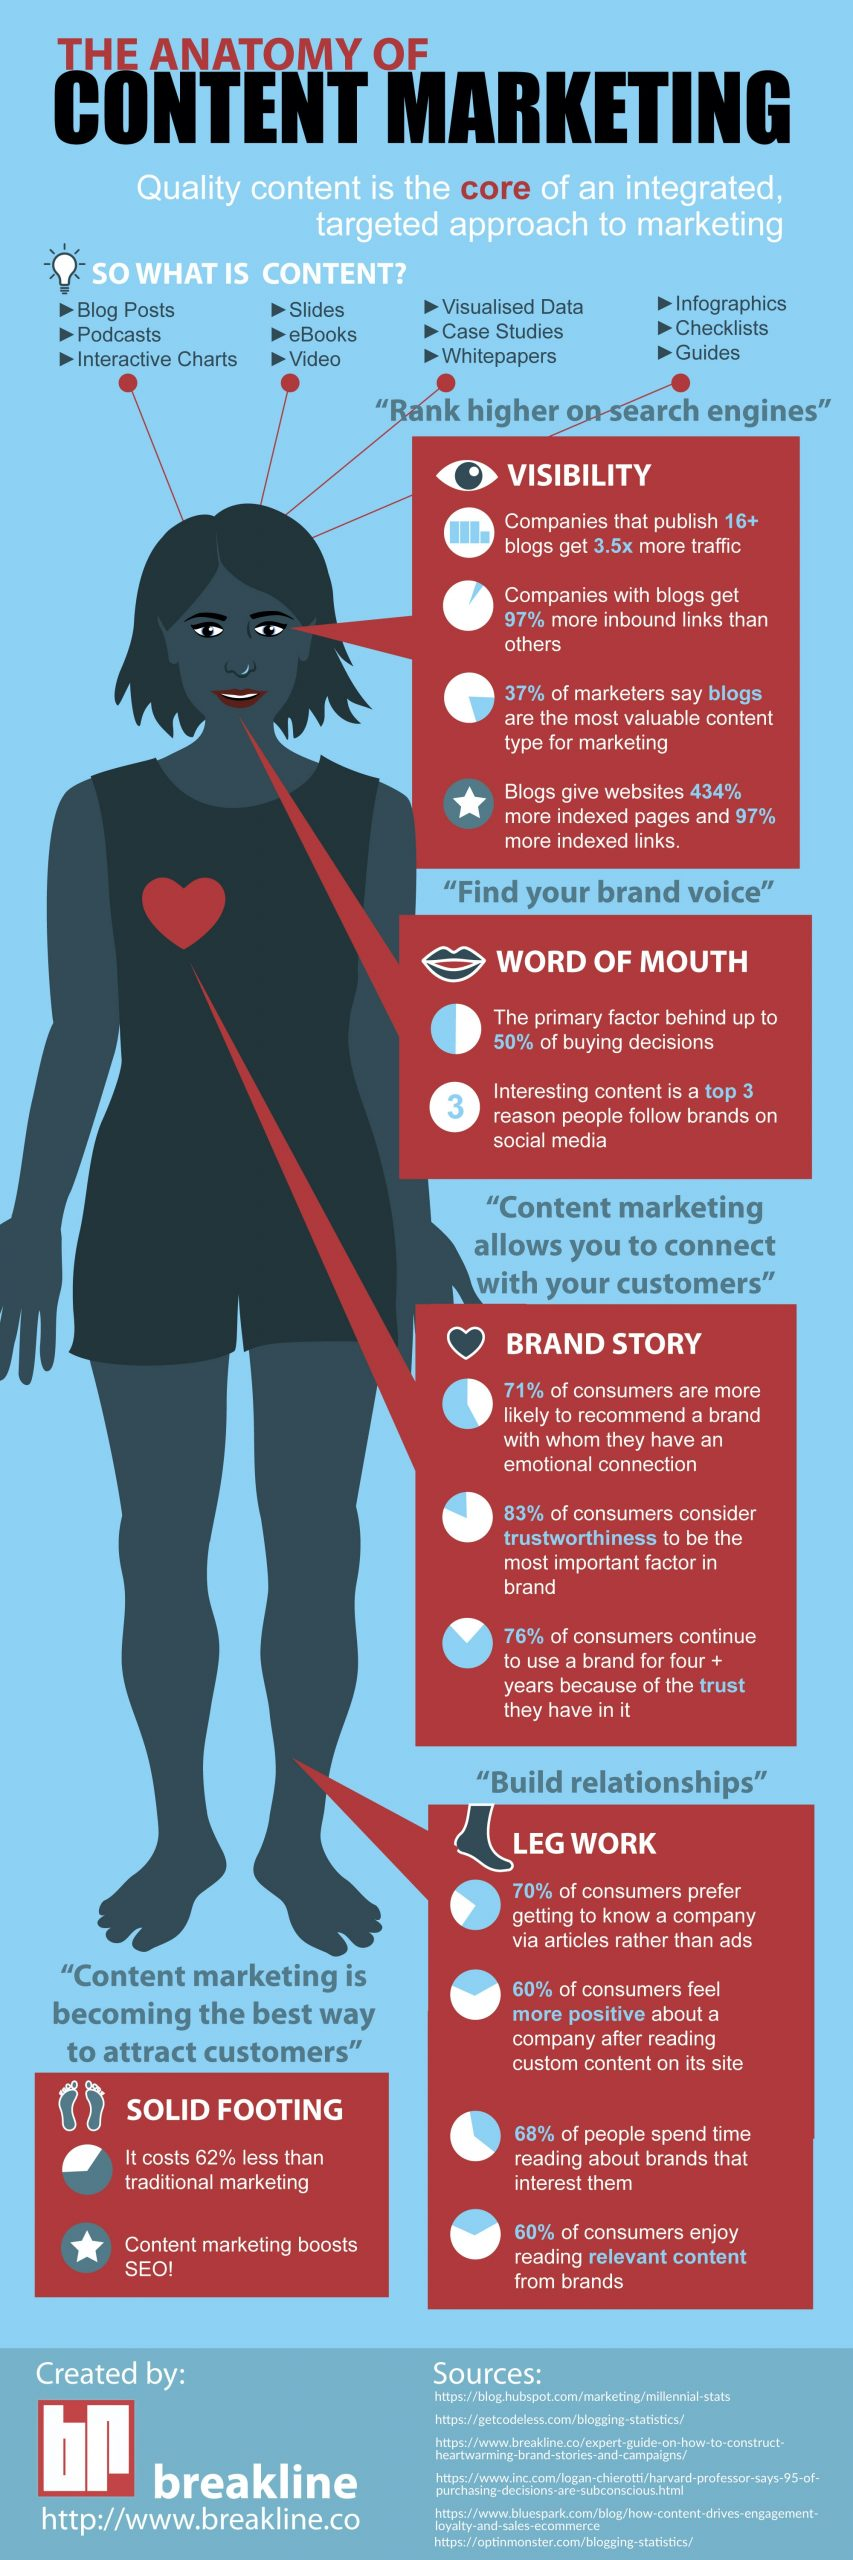 The Anatomy of Content Marketing [Infographic]